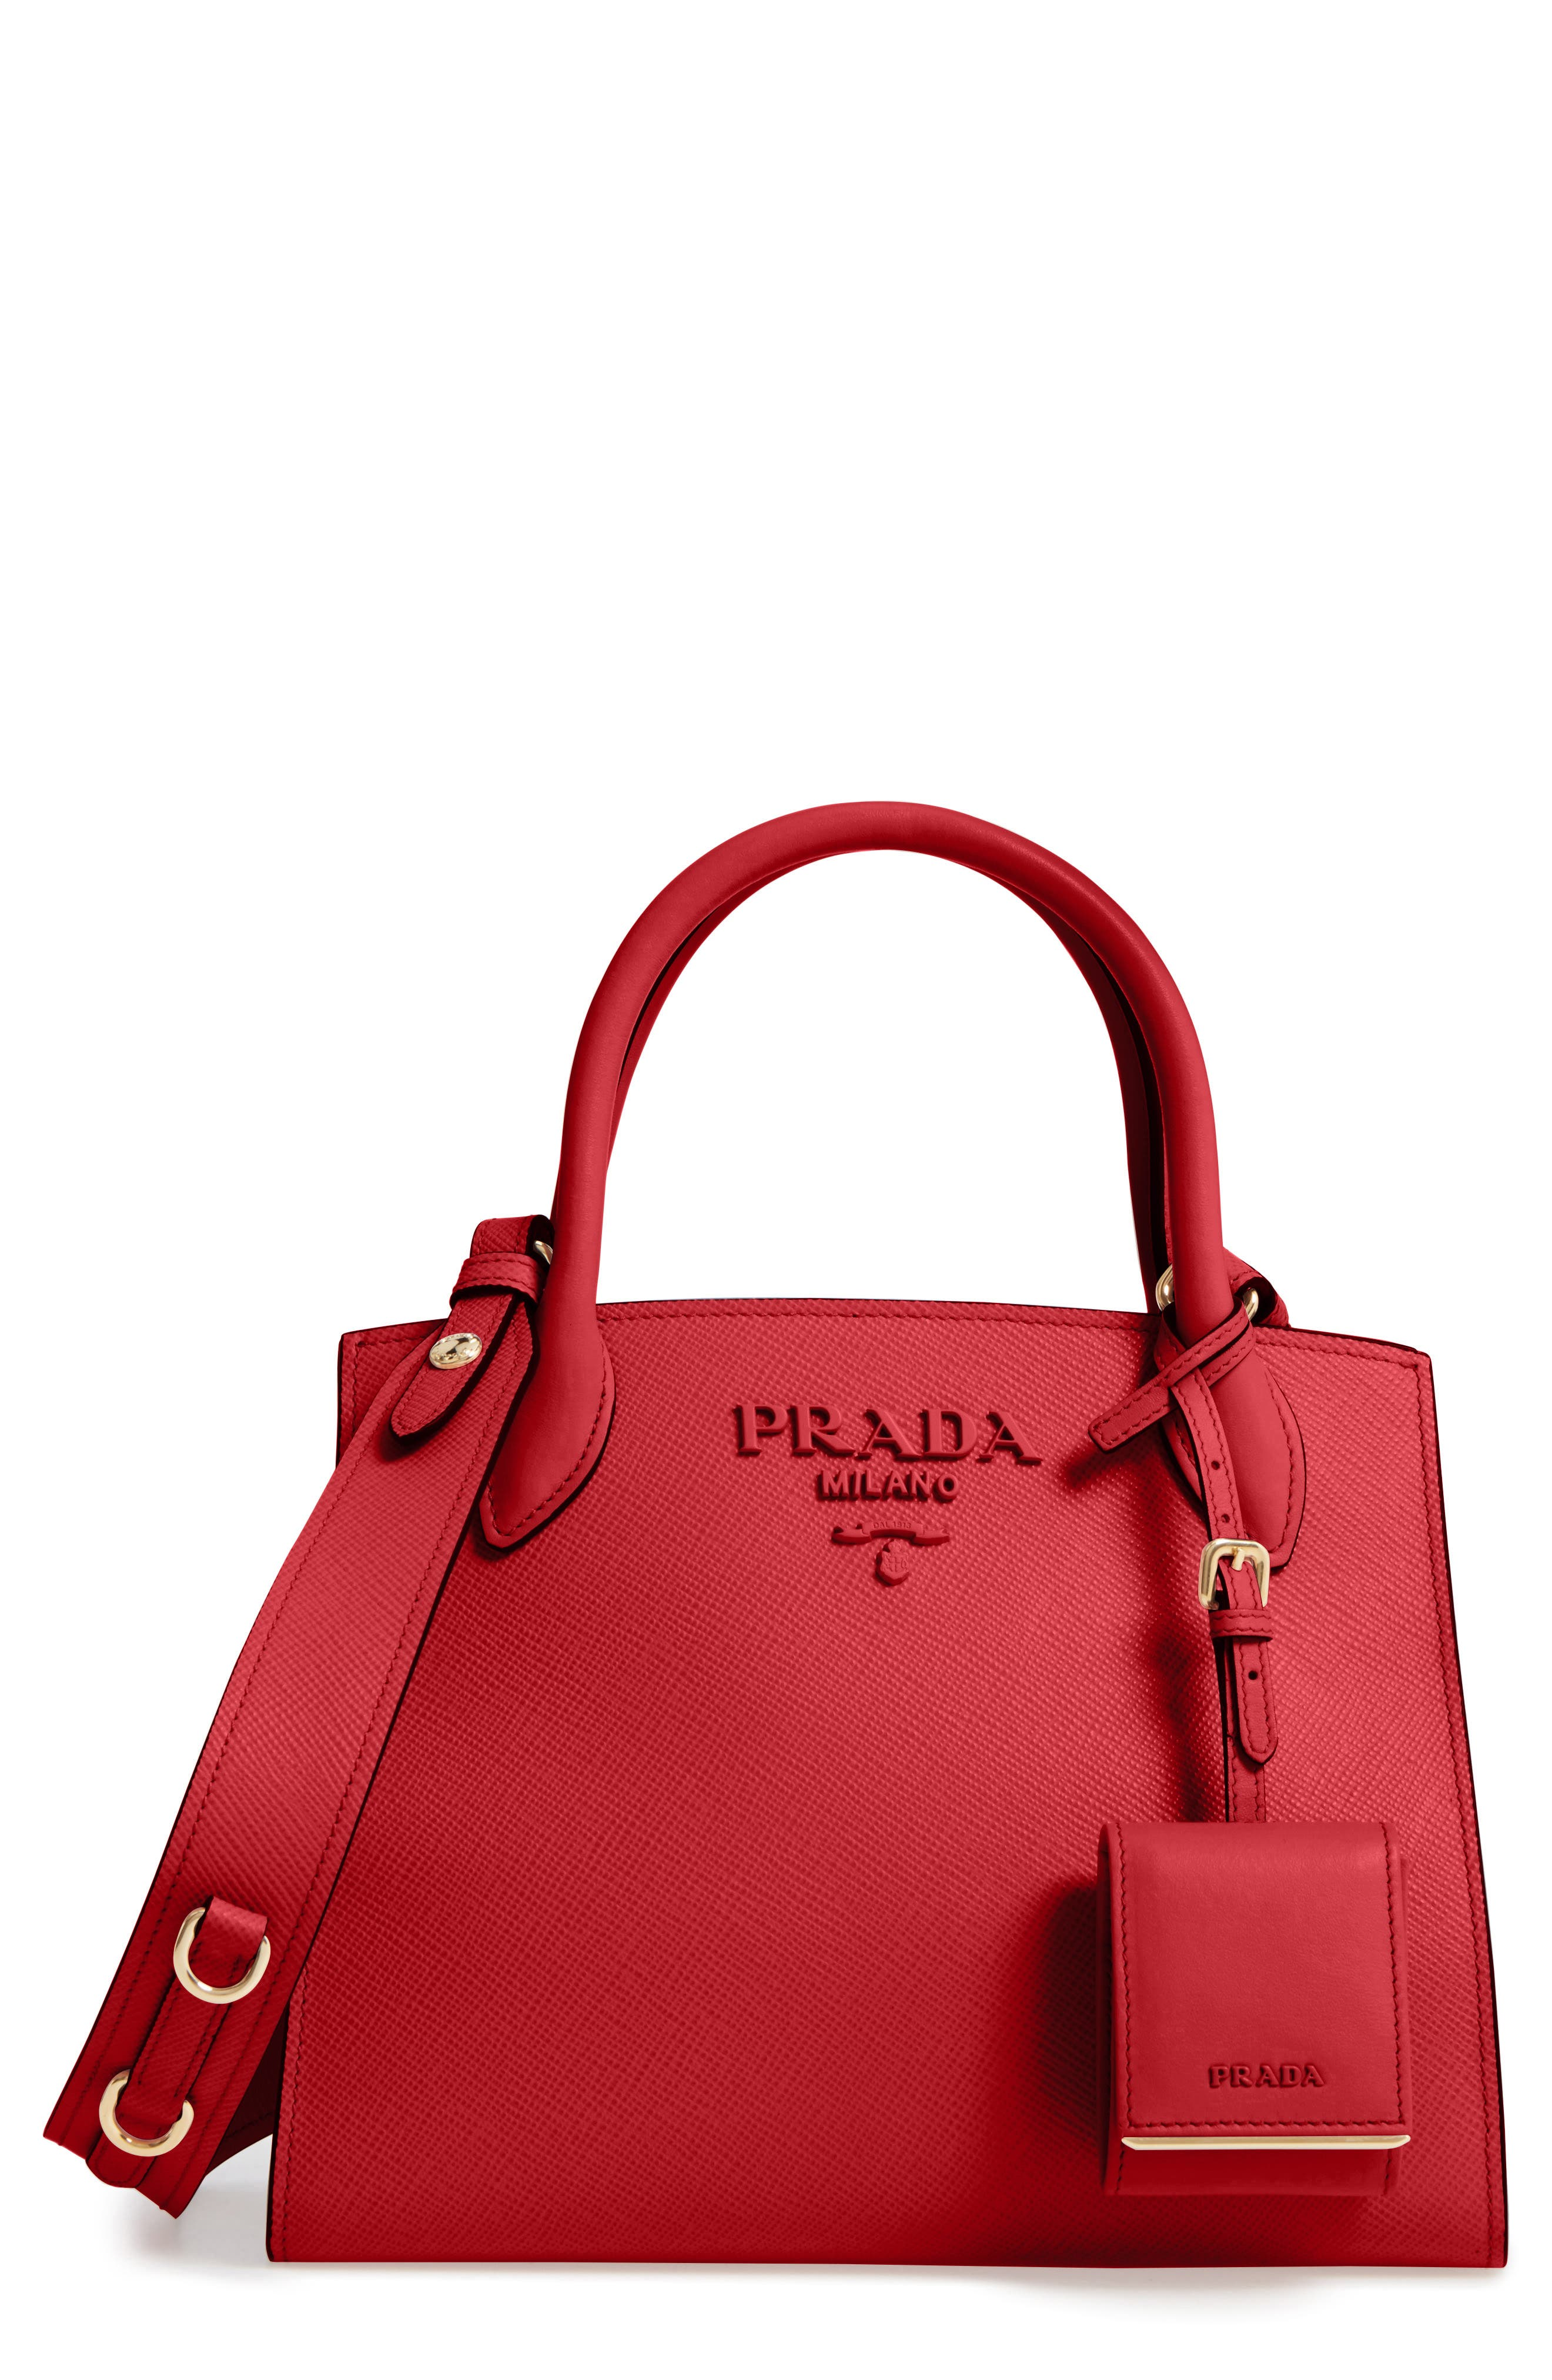 e48f0633495 Prada Tote Bags for Women  Leather, Coated Canvas,   Neoprene   Nordstrom